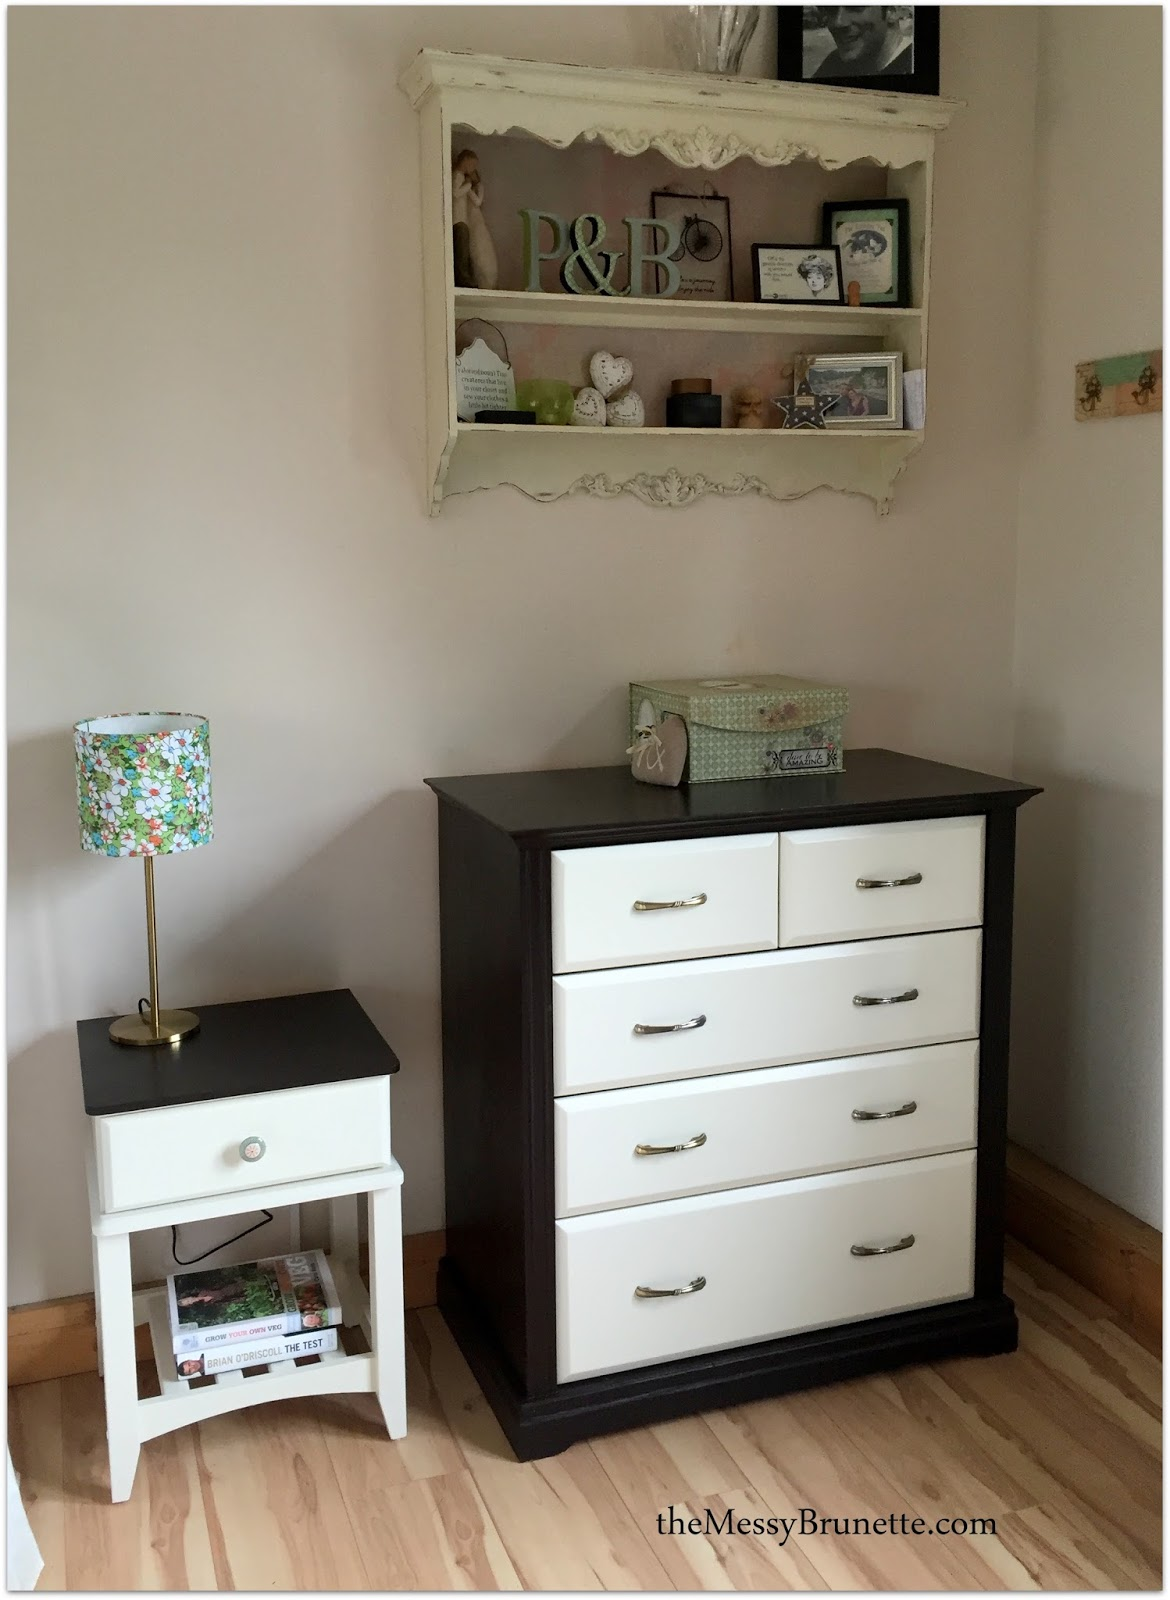 Upcycled bedside lockers and drawers